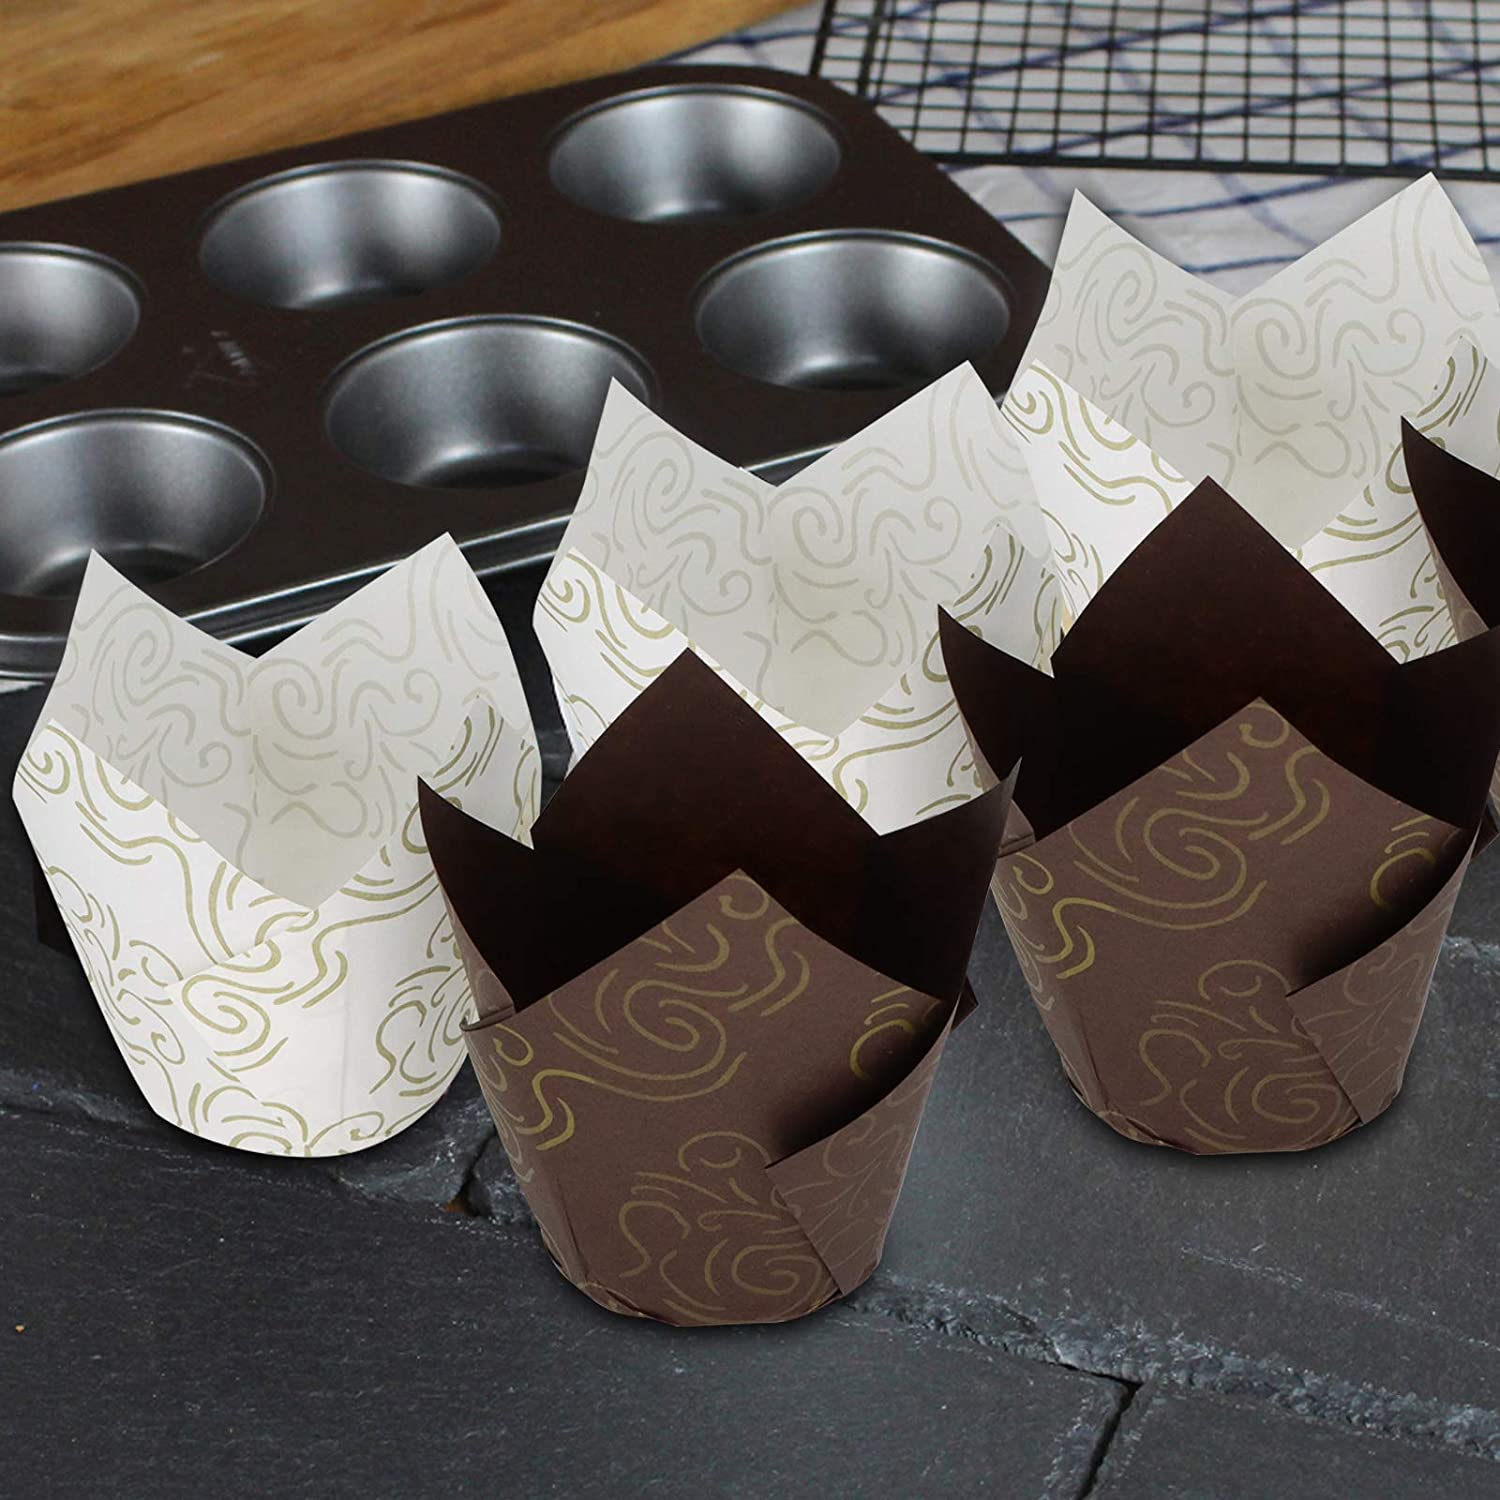 Tulip Cupcake for Baking Cupcake Cases Tulip Baking Cups Brown and White Standard Size Muffin Cases Cupcake Liners Muffin for Wedding 2 Colors Paper Muffin Cups Party 100PCS Birthday